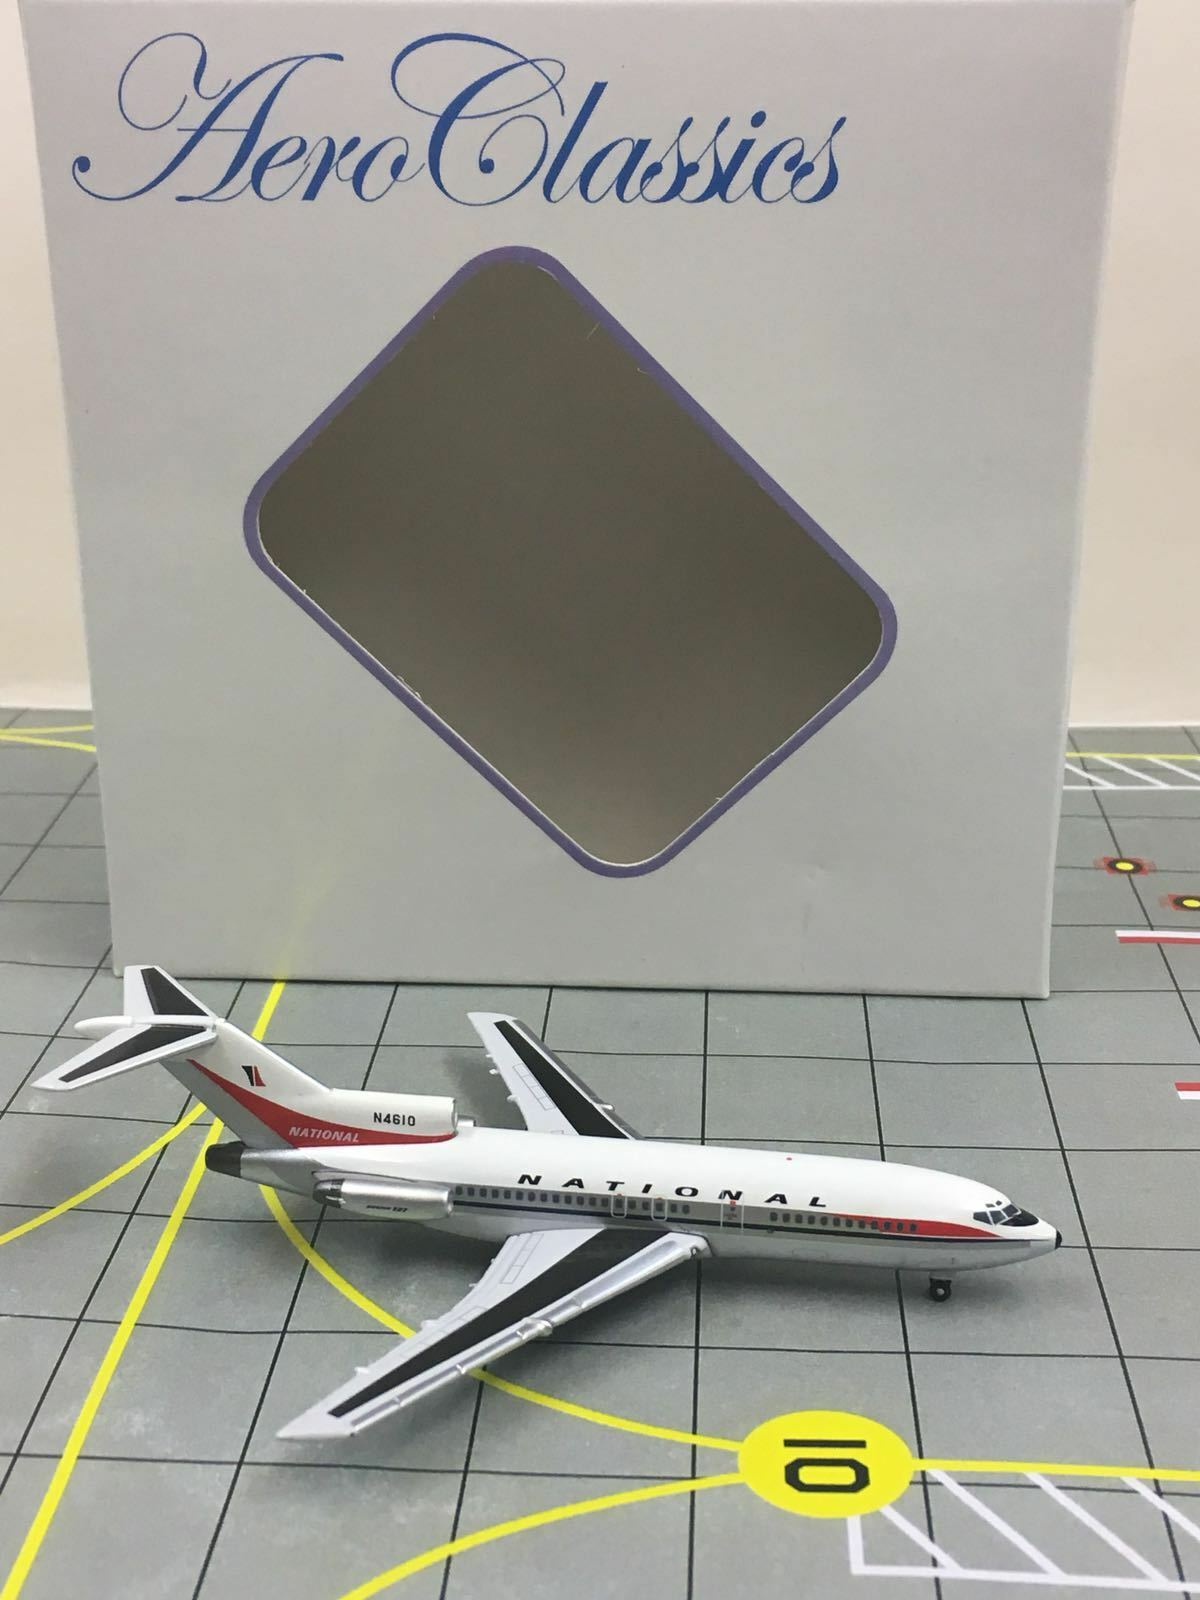 RARE AeroClassics 1 400 National Boeing 727-100 N4610  Jane 1970s color